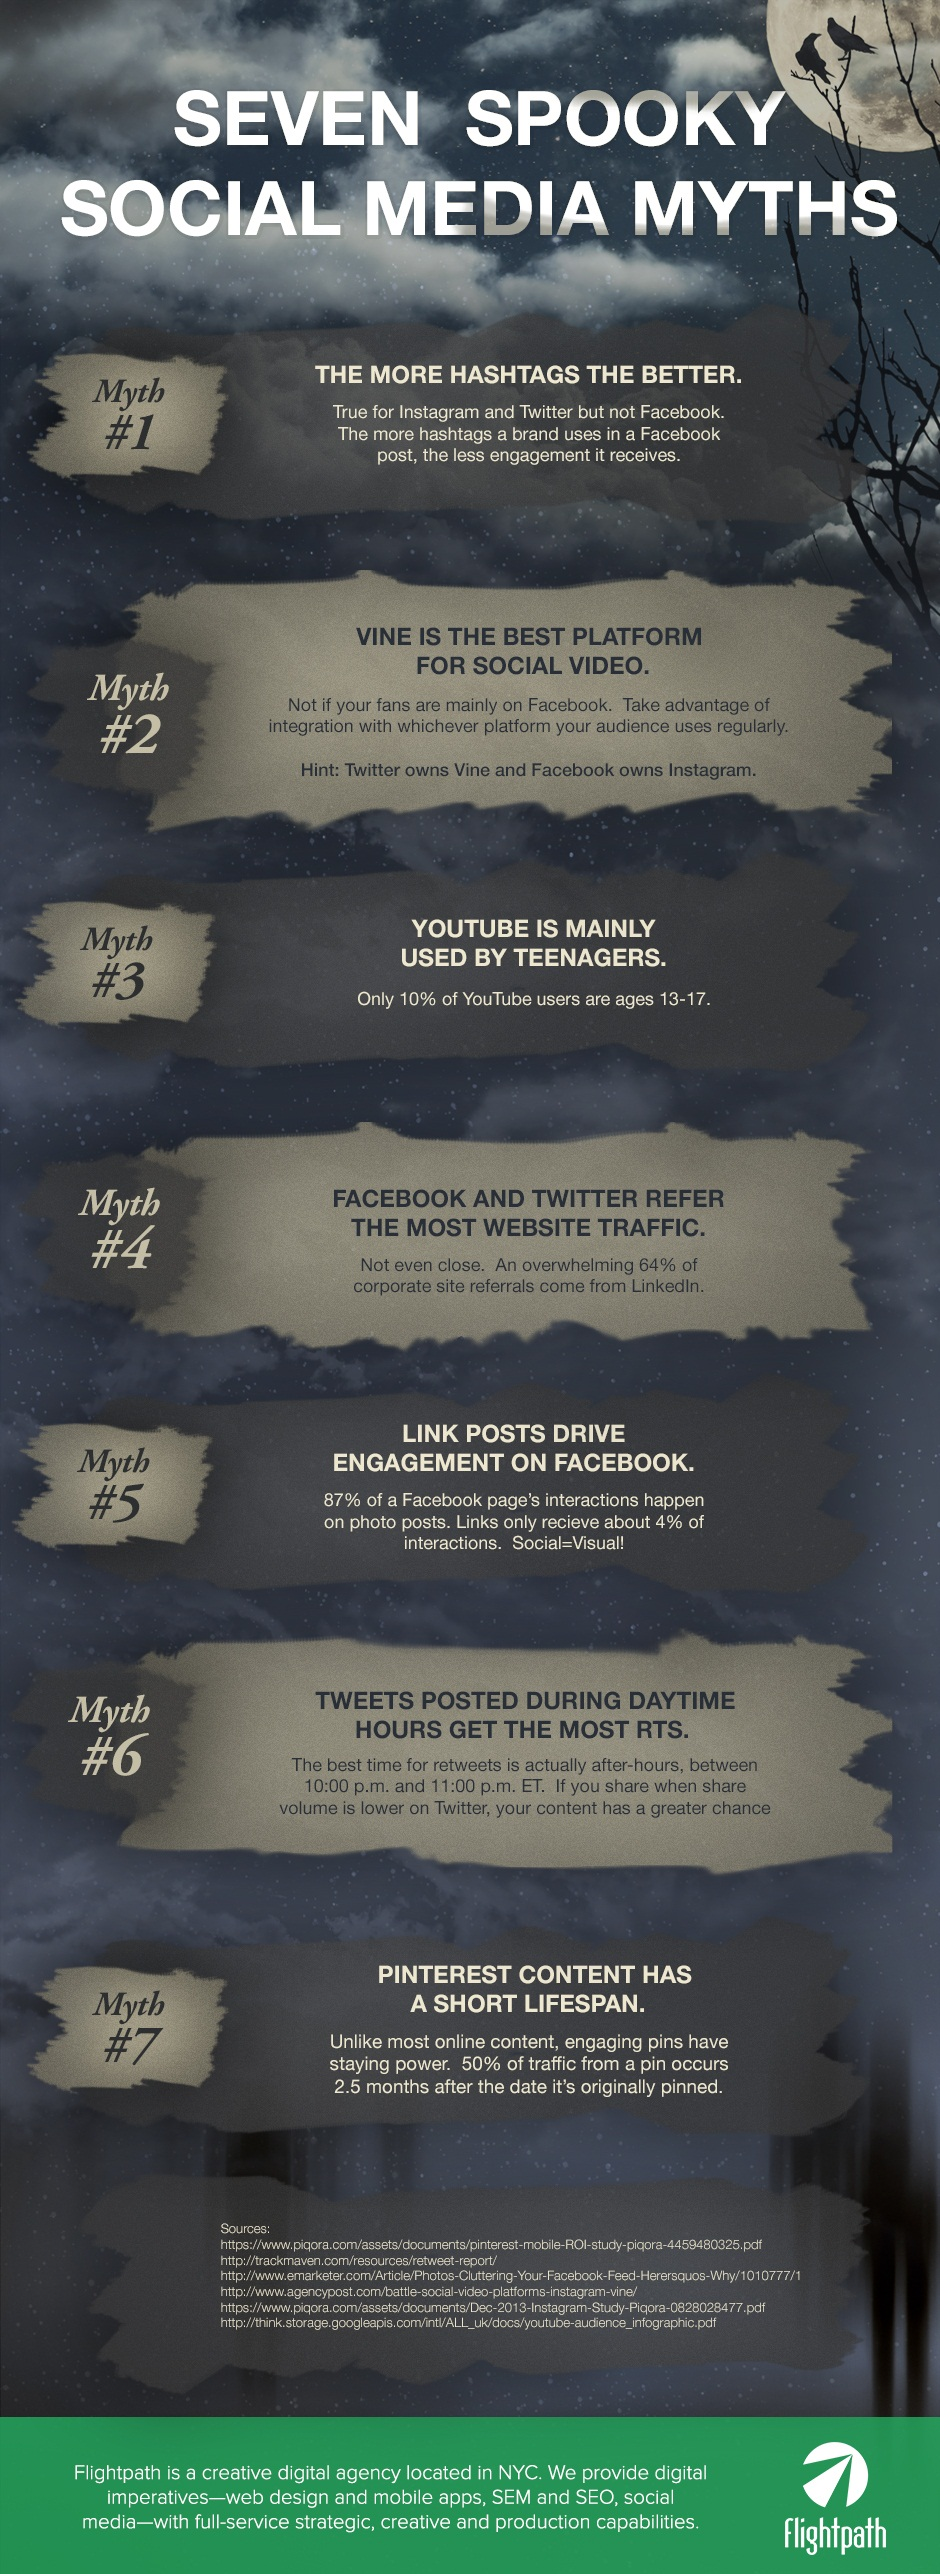 Seven Spooky #SocialMedia Marketing Myths Debunked - #infographic